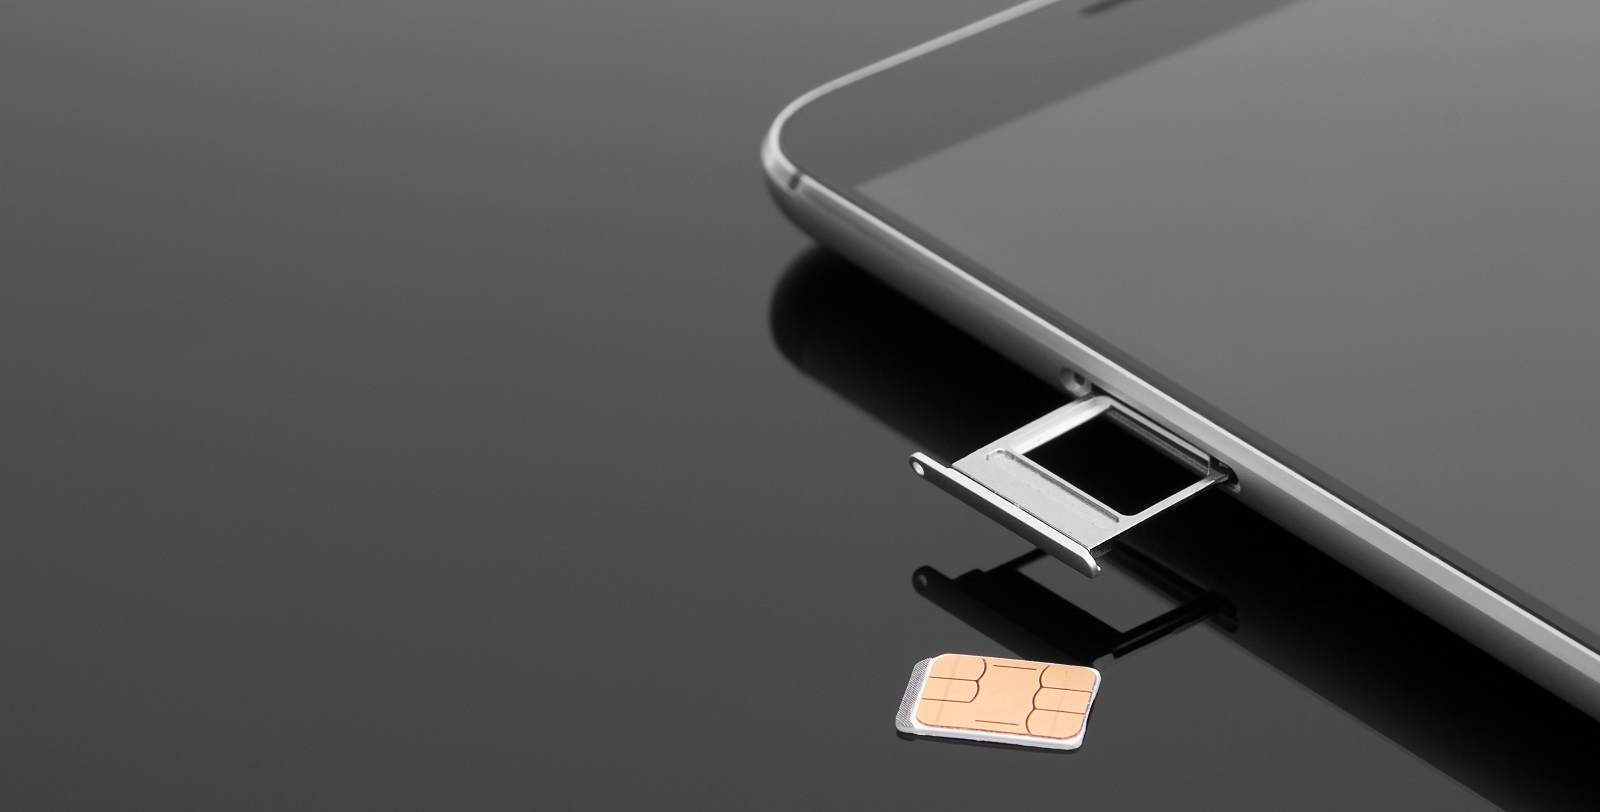 The traditional SIM is removable and can be replaceable at any time.